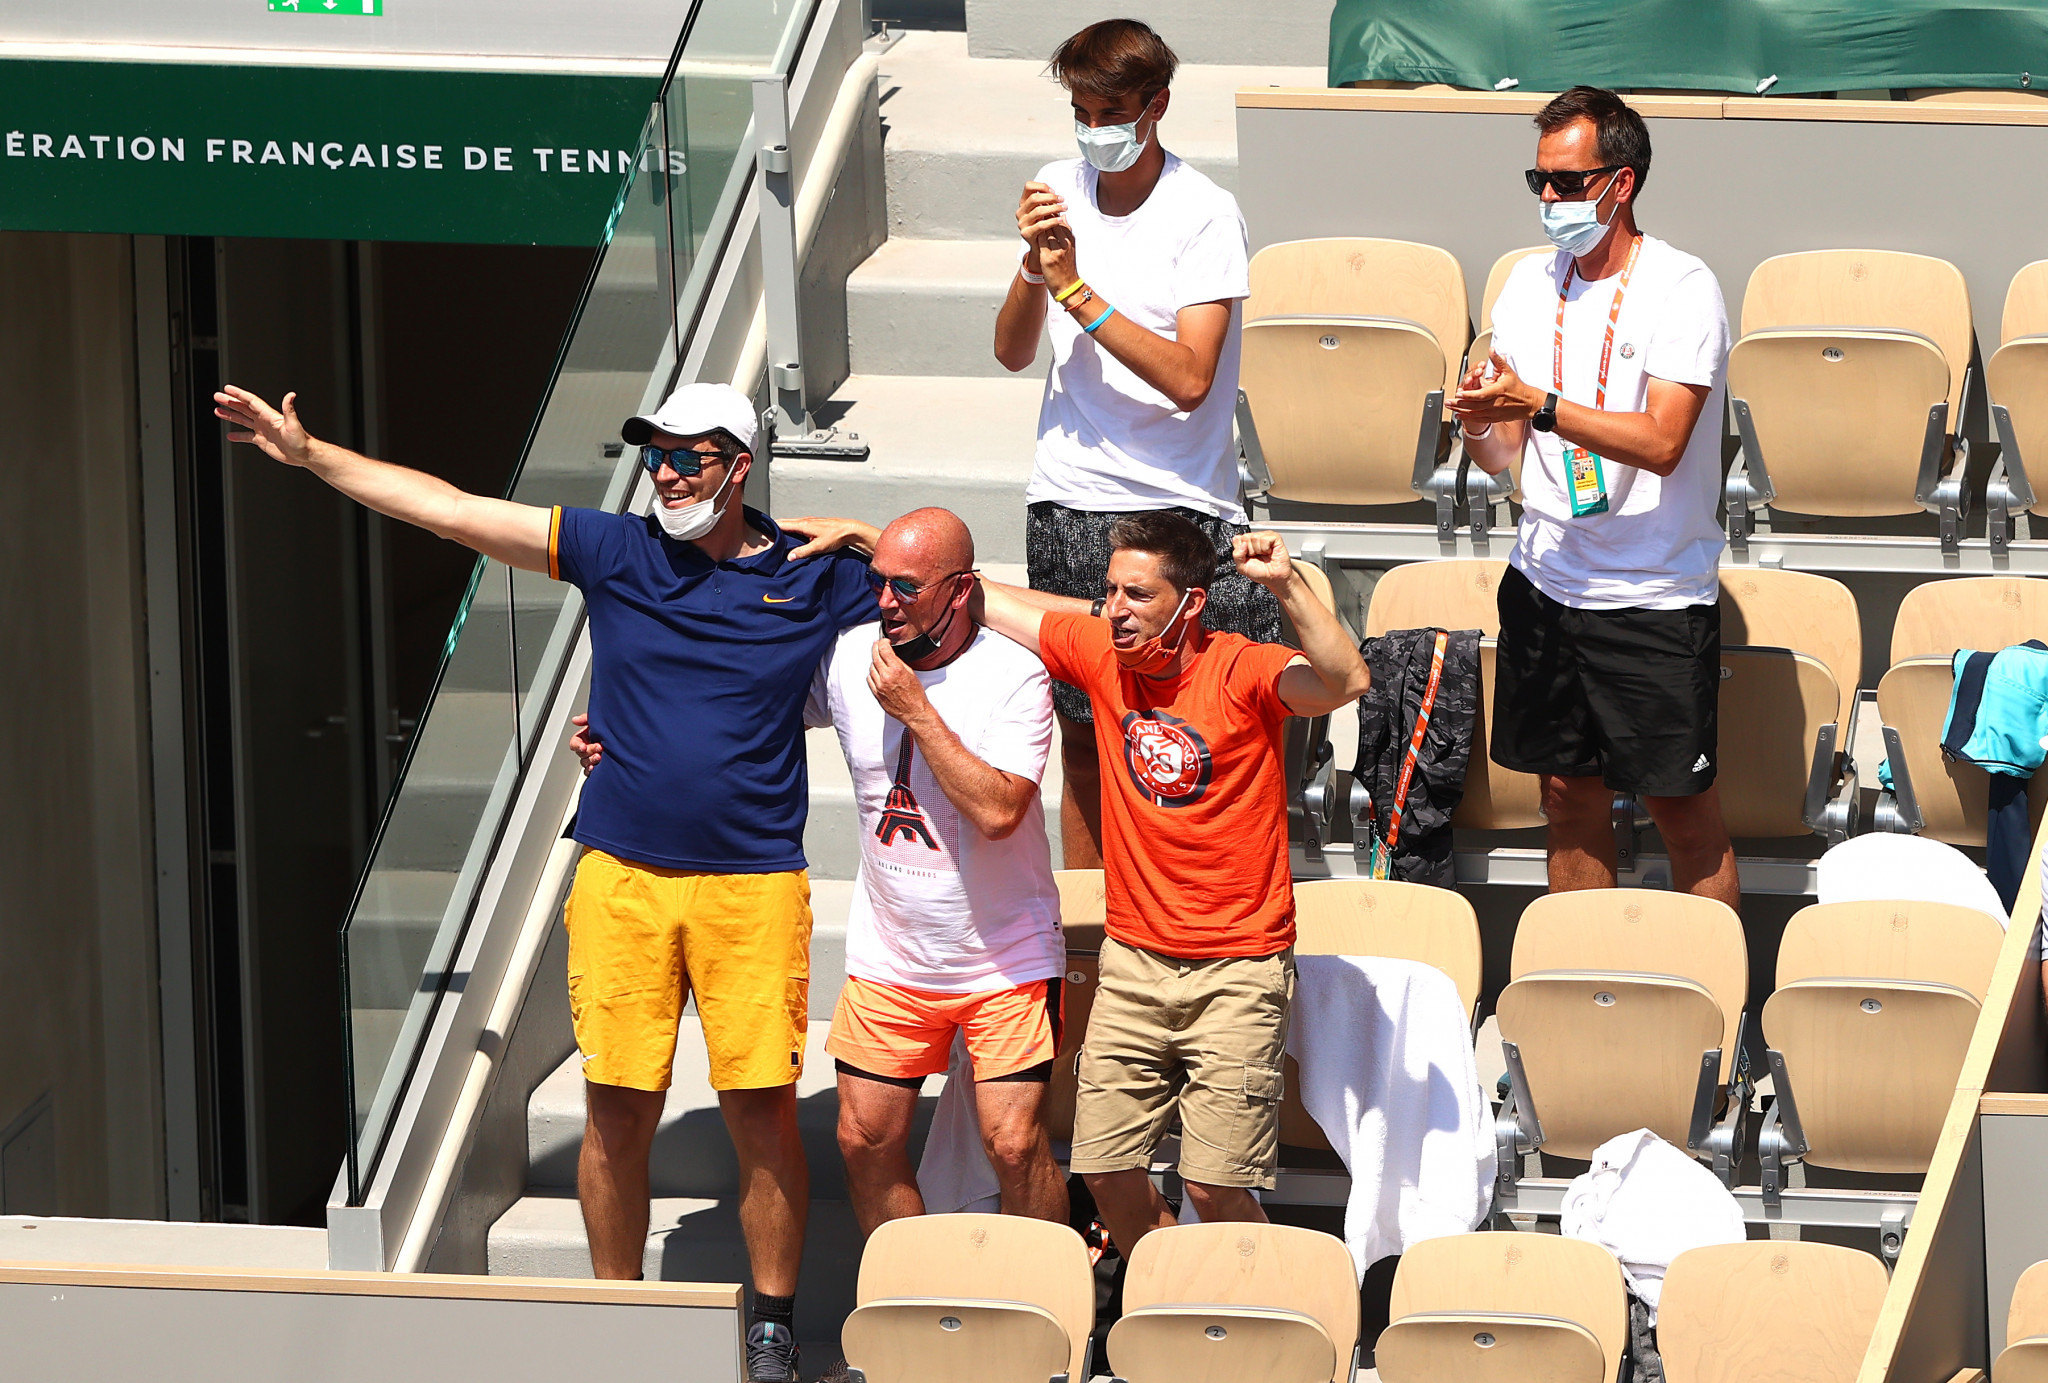 Tamara Zidansek's player box celebrate after the world number 85 upsets Badosa to reach the last four at Roland-Garros ©Getty Images